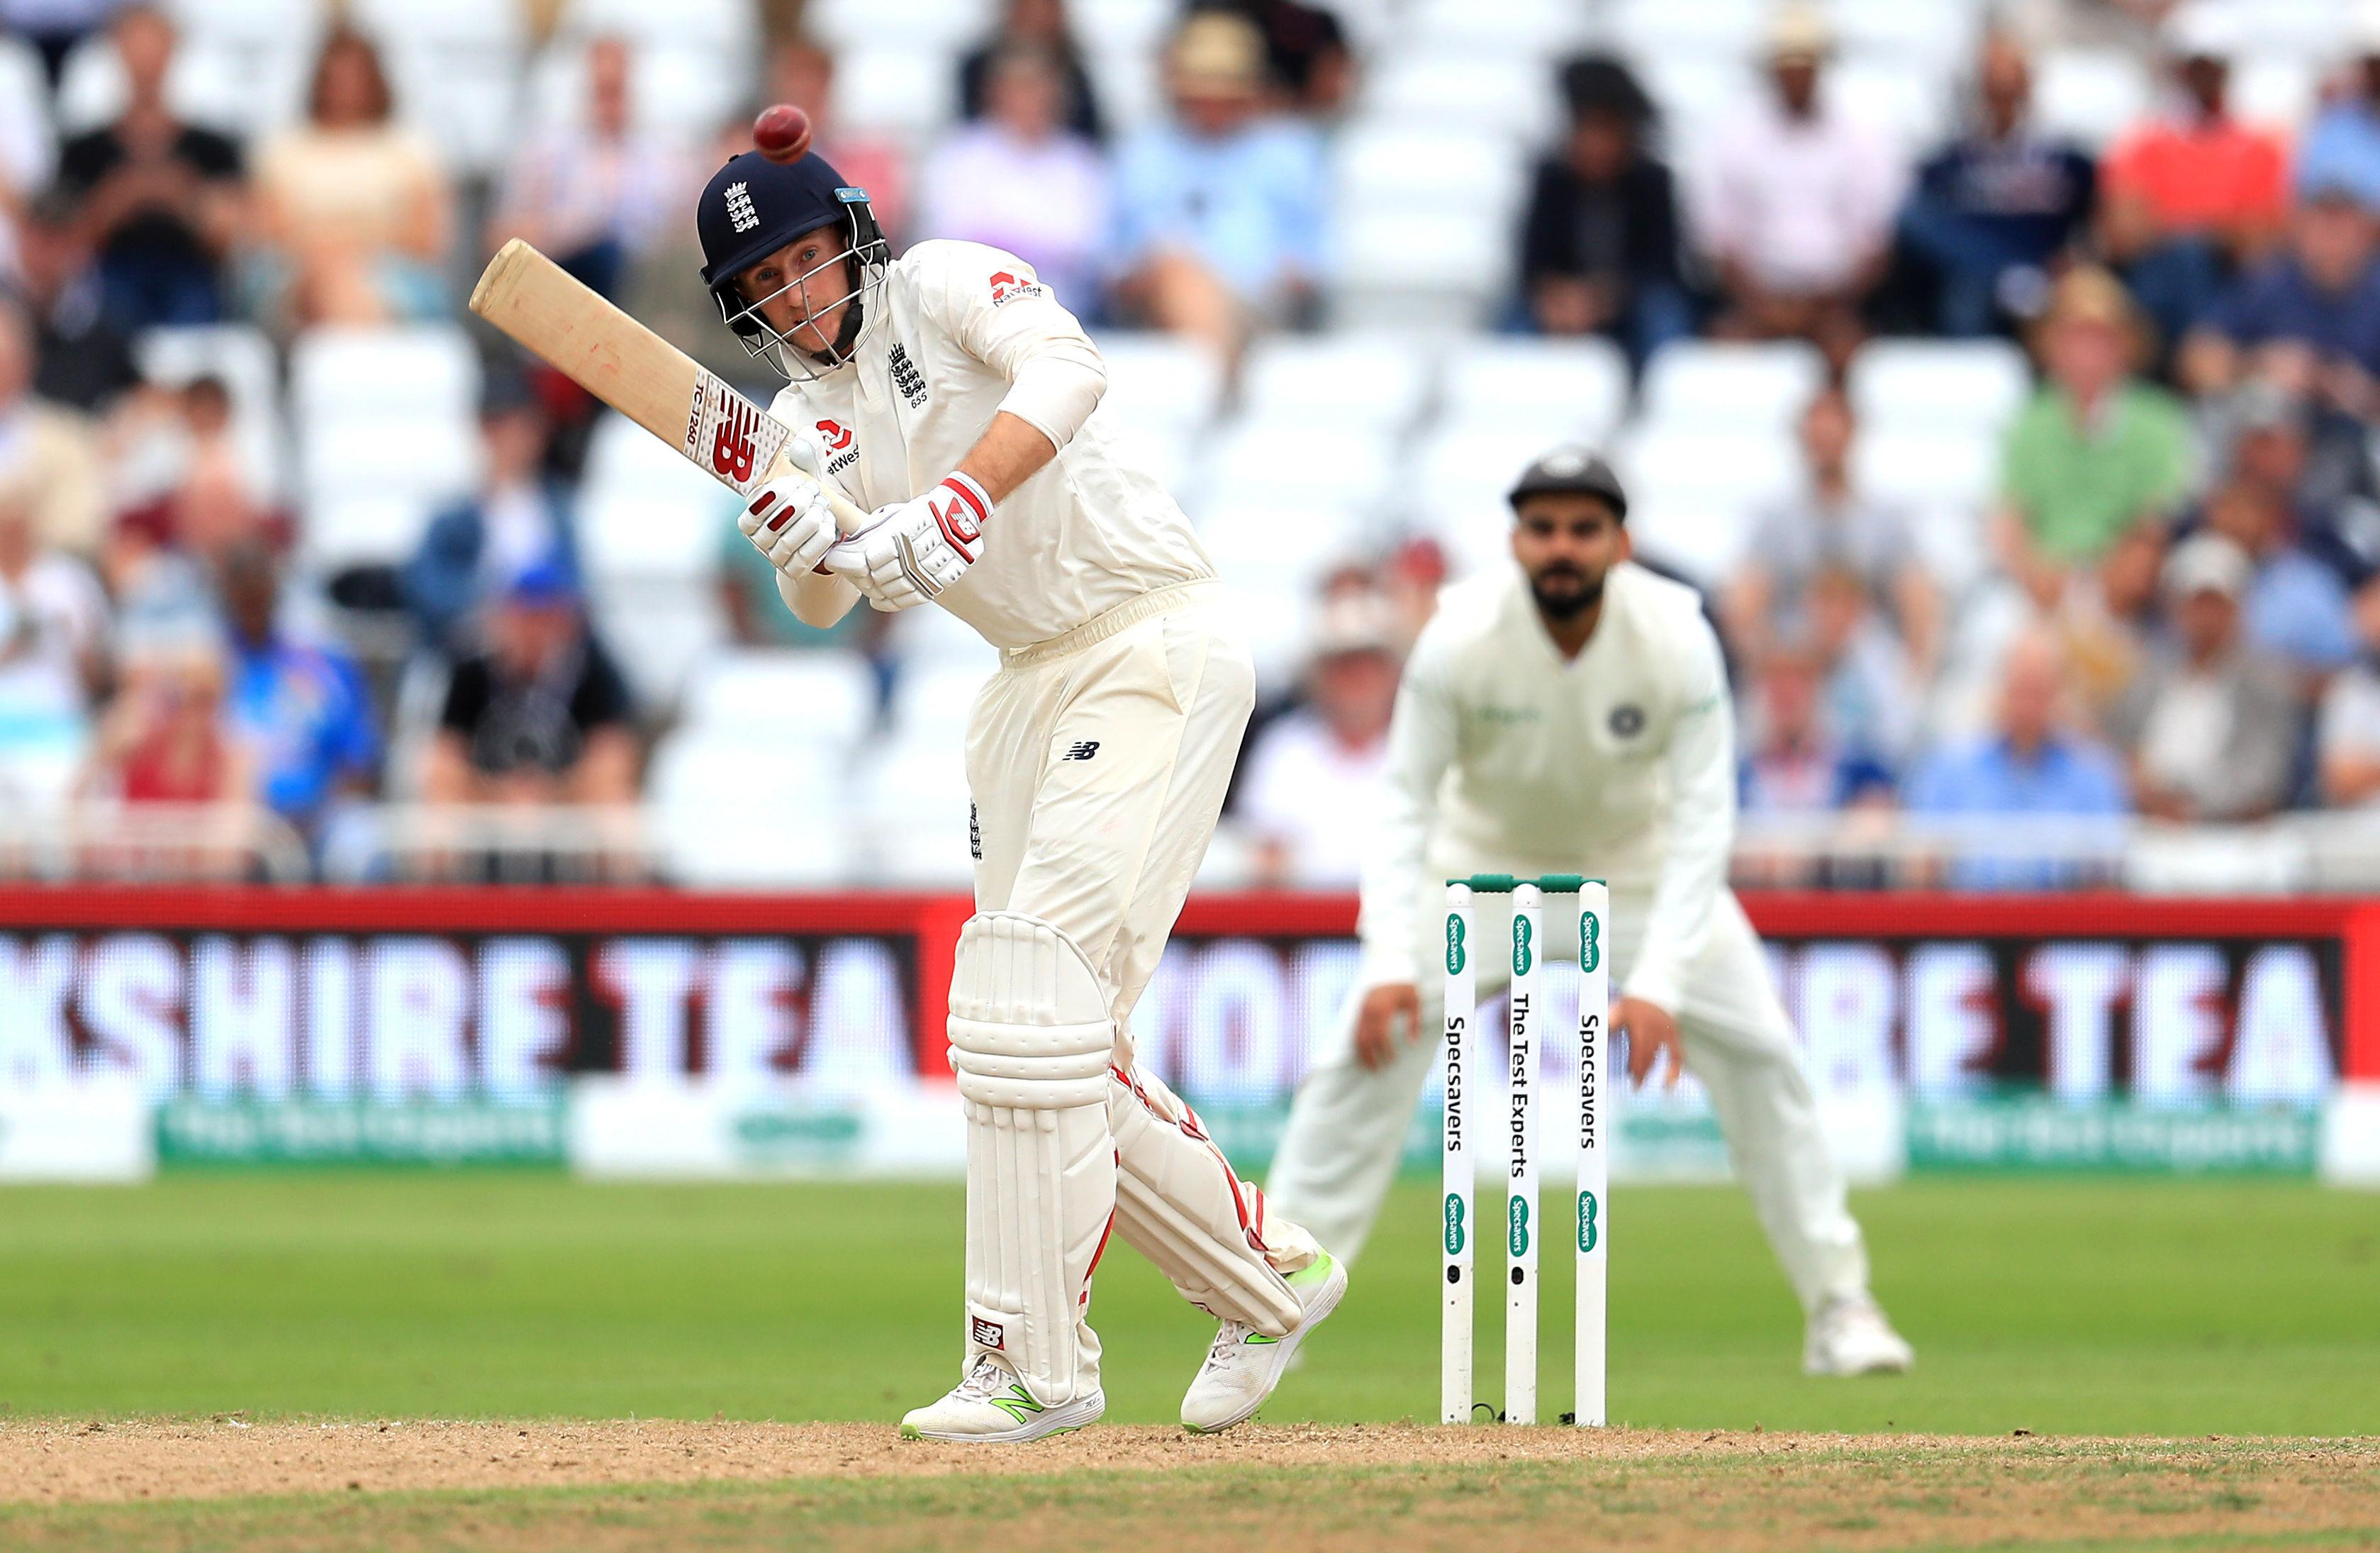 Despite losing drastically, England's top five reached ten or more in both innings